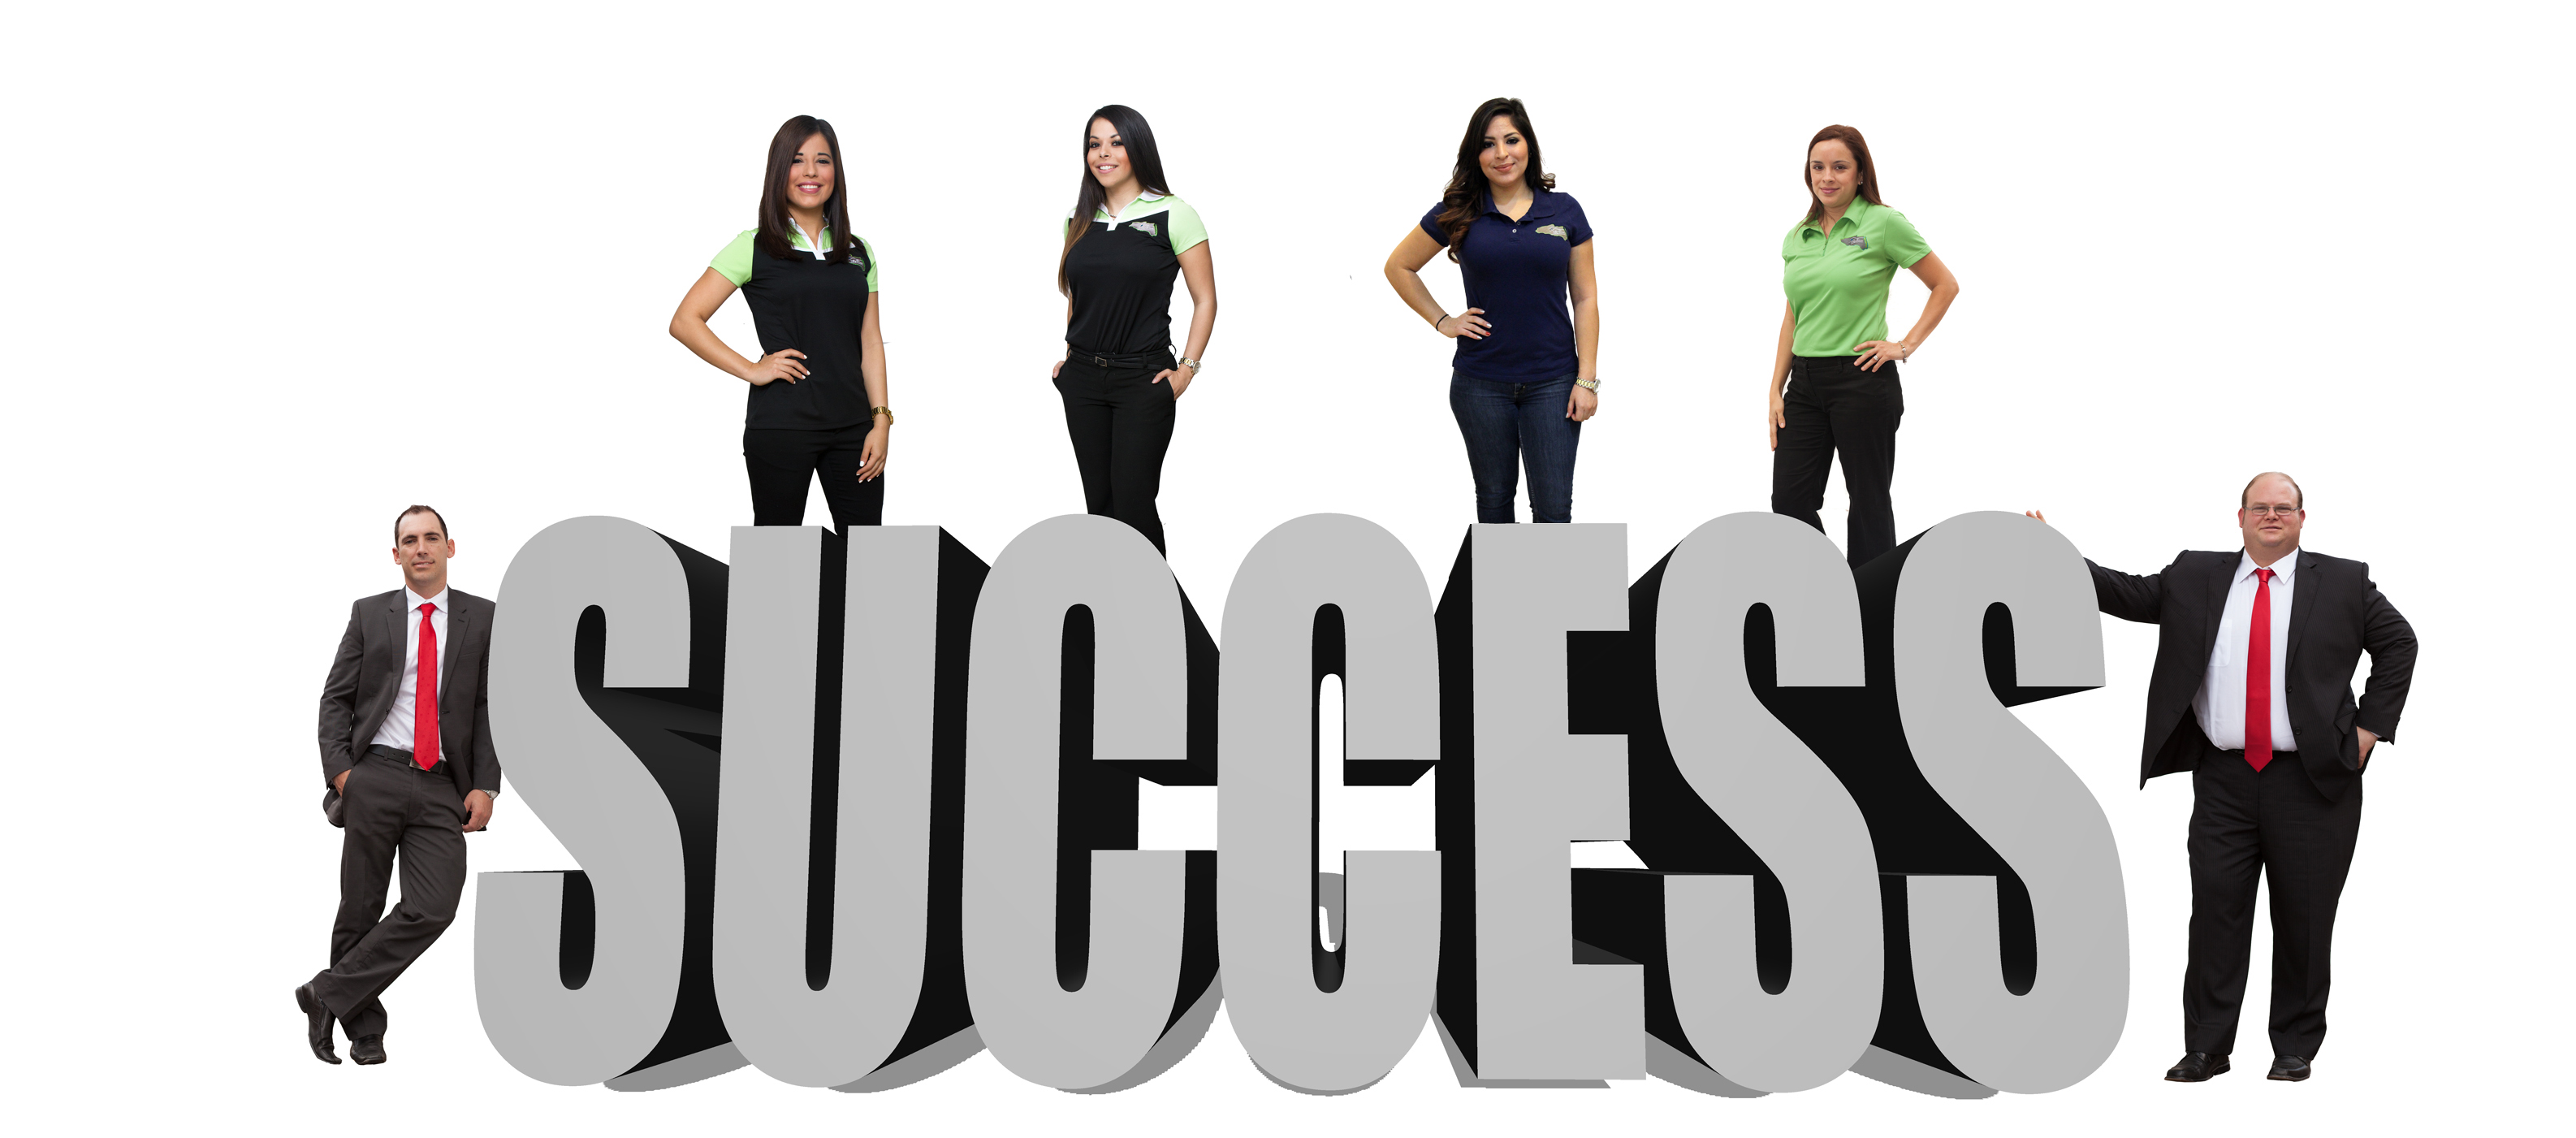 careers hidalgo county real estate the ryan brian team of the ryan brian team of expert advisors is a team oriented office of individual agents different abilities and strengths we believe